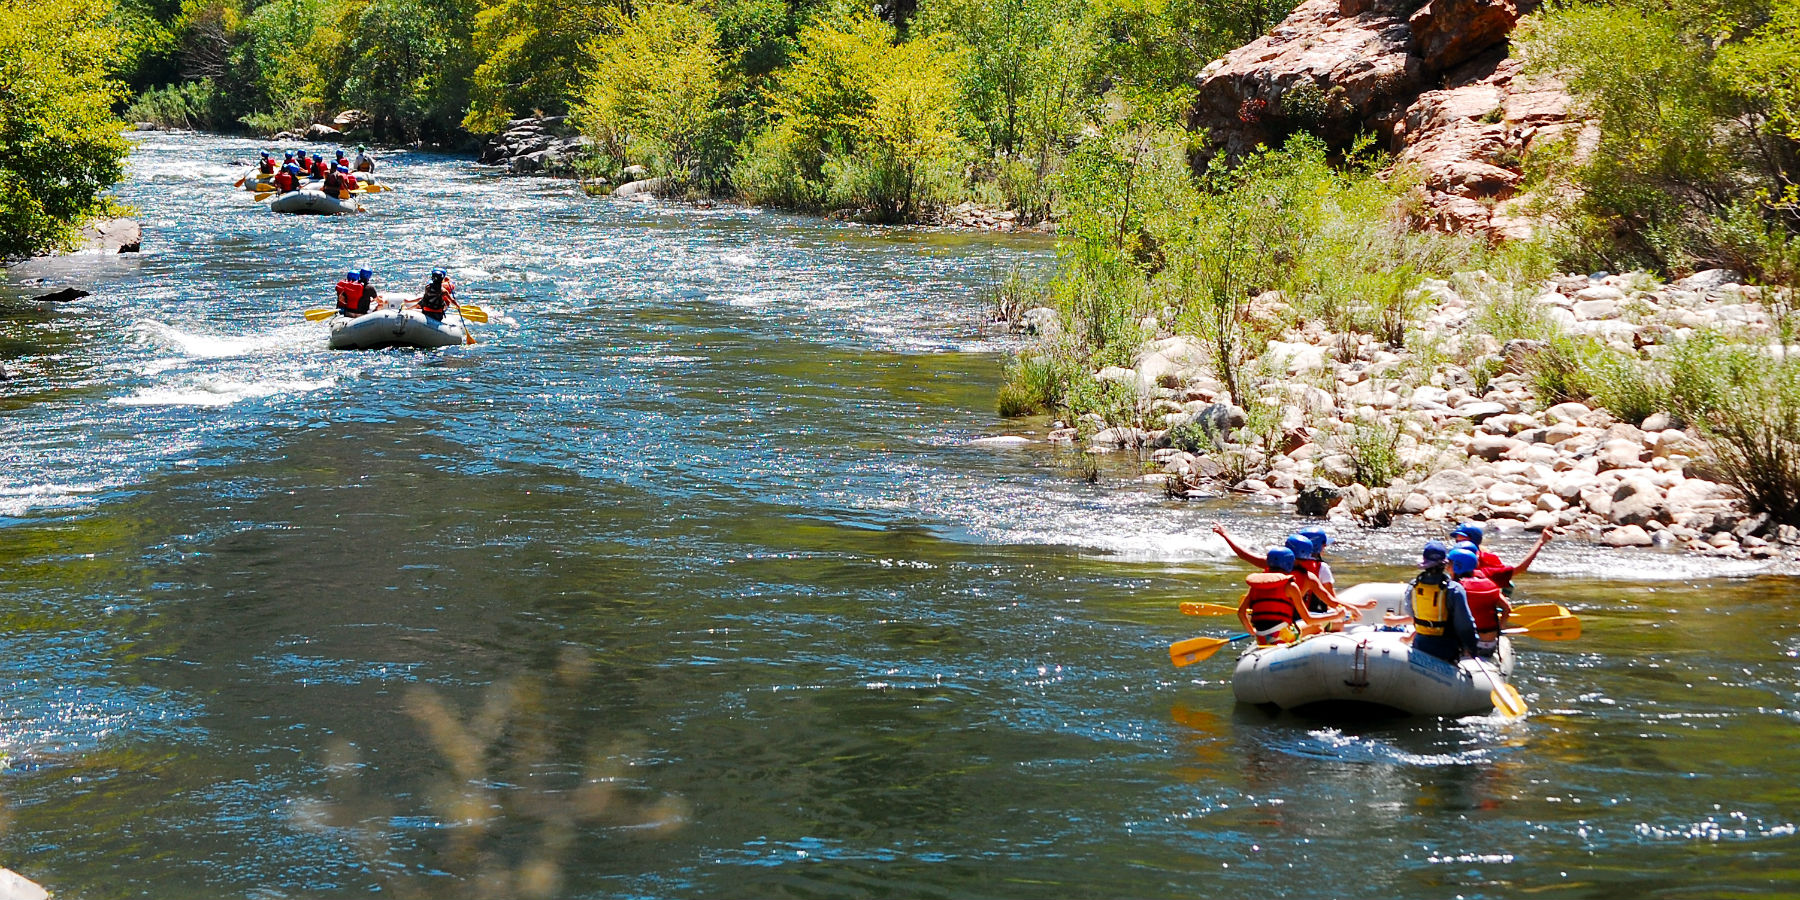 Rafting on the Upper Kern